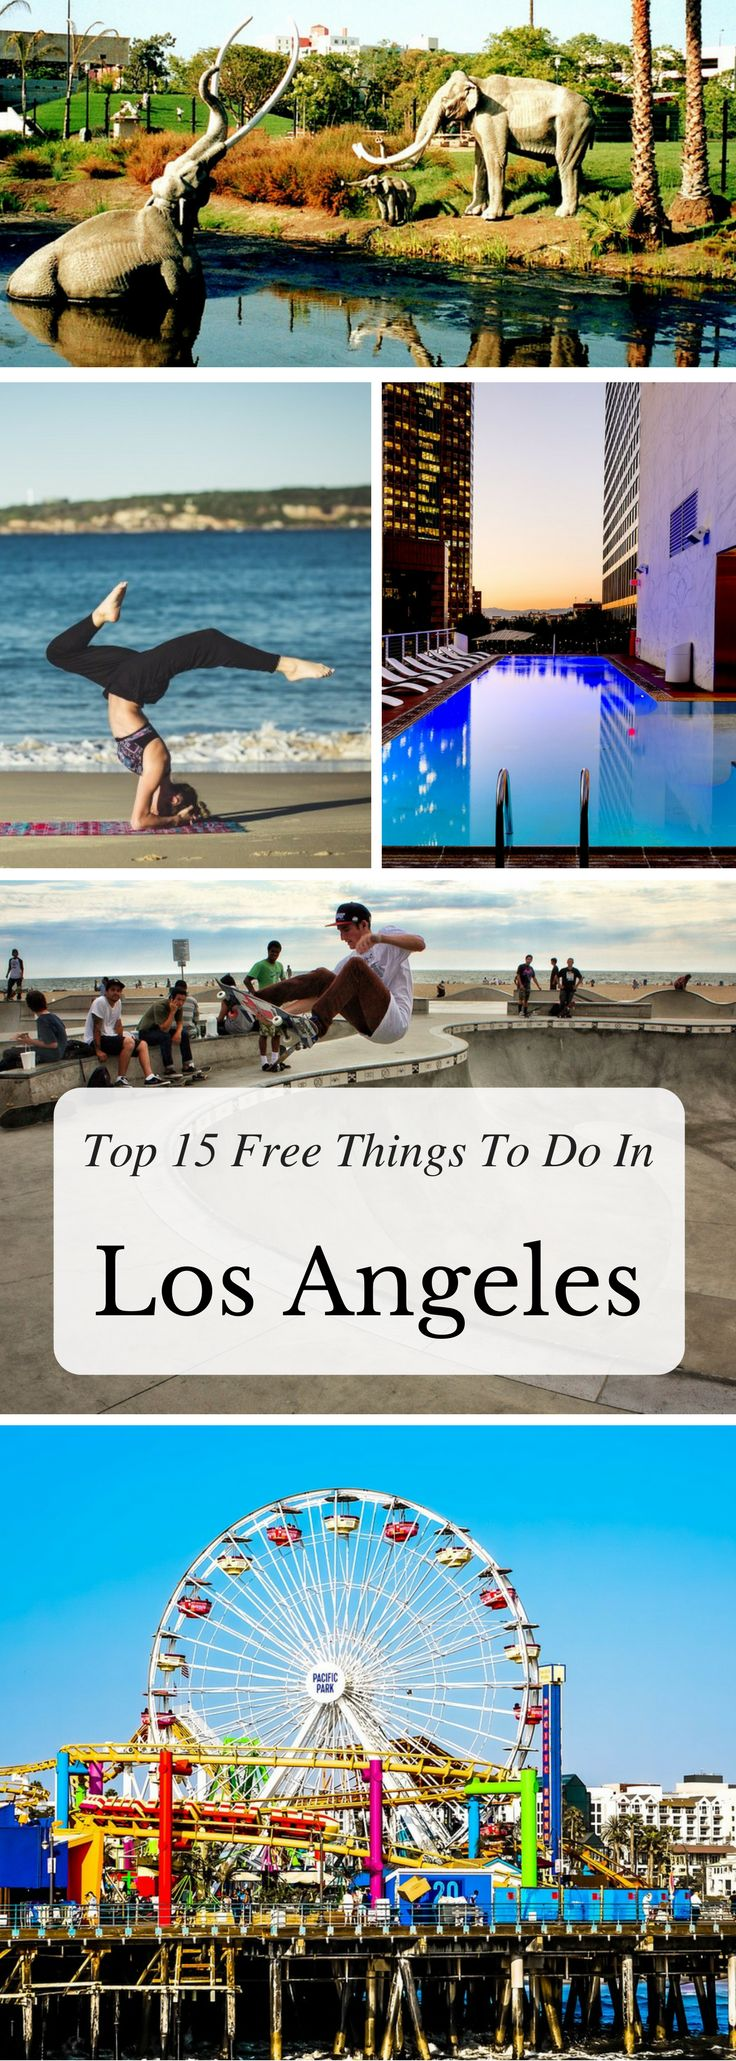 Looking for the best free things to do in Los Angeles? Look no further! We've gathered our favorite 15 activities that are completely free, including different types of activities, various neighborhoods, and a diversity of scenes and vibes, just for you. Click on the link to read more about the Top 15 Free Things To Do in Los Angeles!